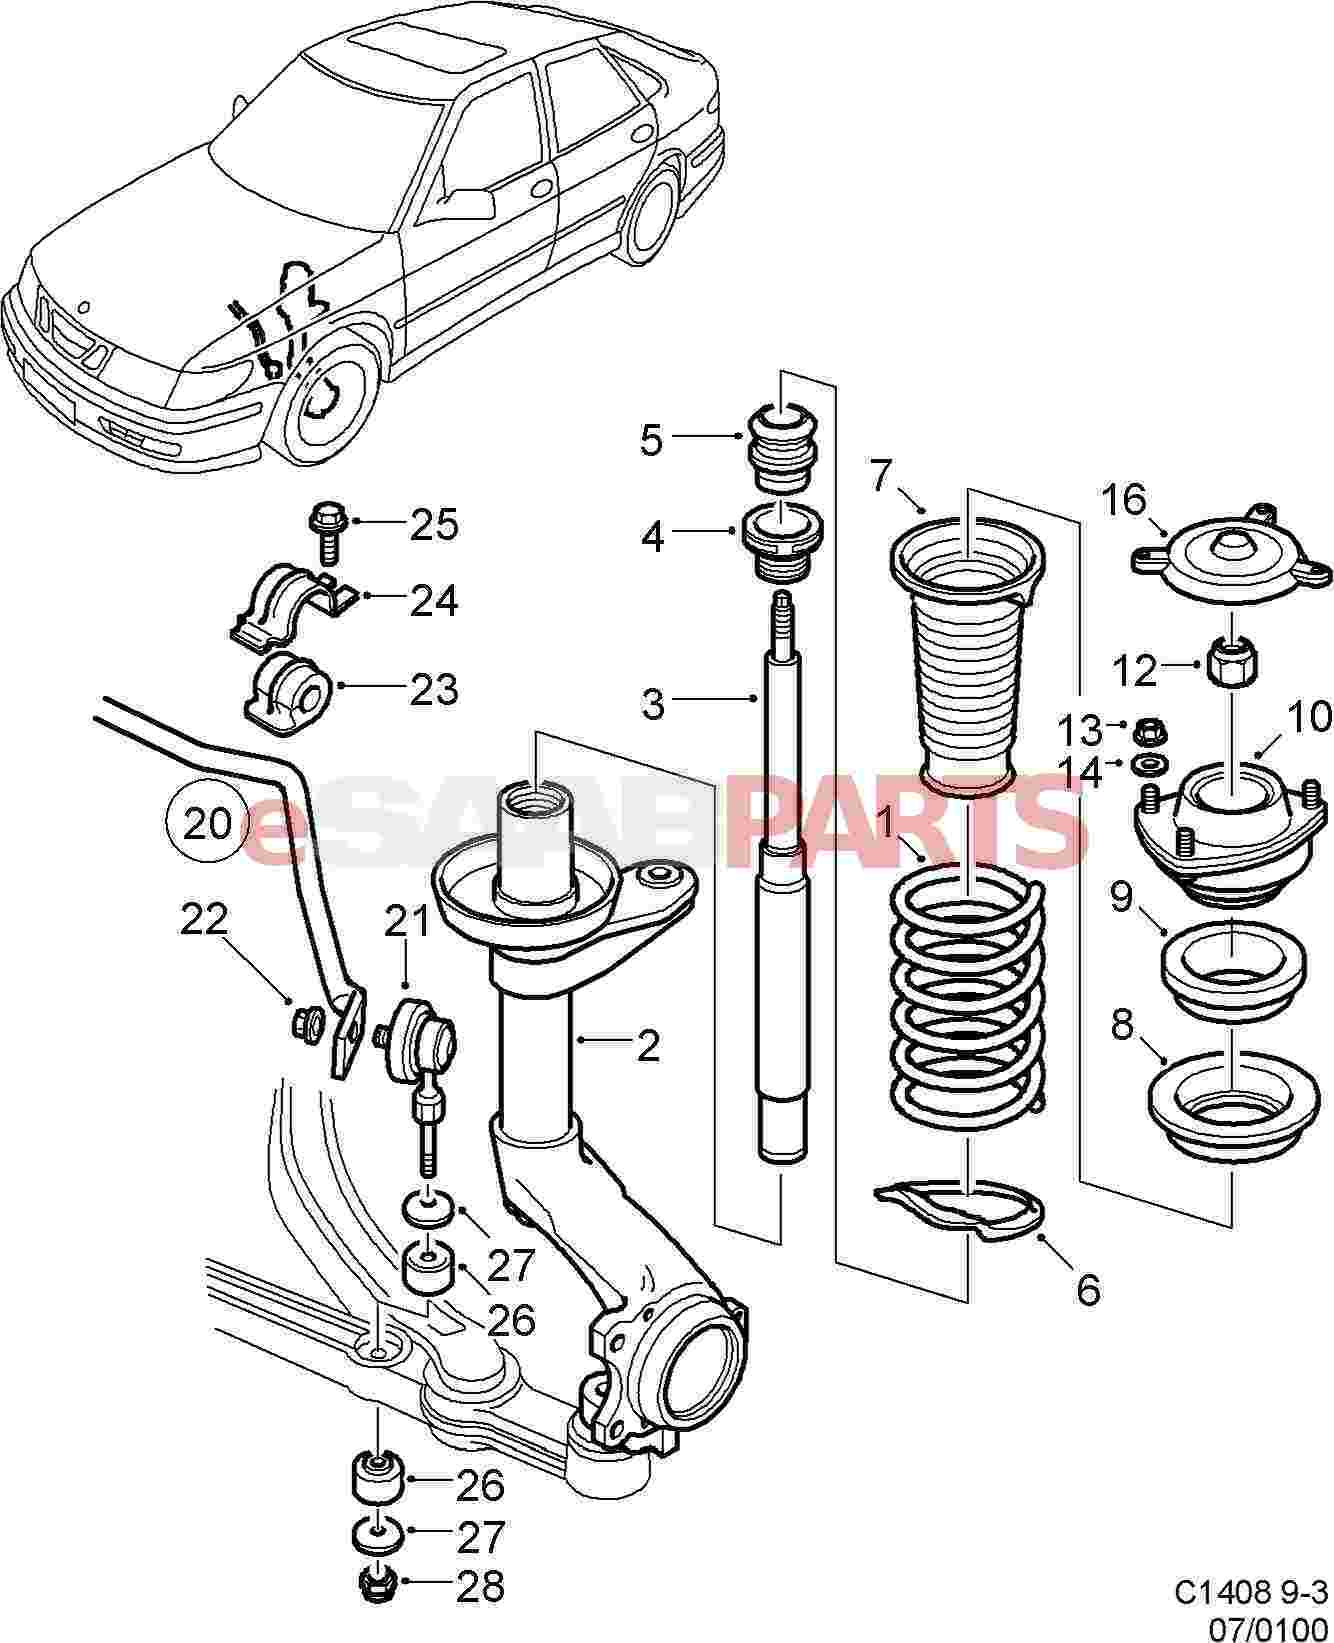 Showthread together with Vaihdelaatikon Tiiviste 900 9 3 9 5 likewise Impala 3800 V6 Engine besides 1 9 Tdi Engine  partment Diagram also Viewparts. on saab 9 3 turbo parts